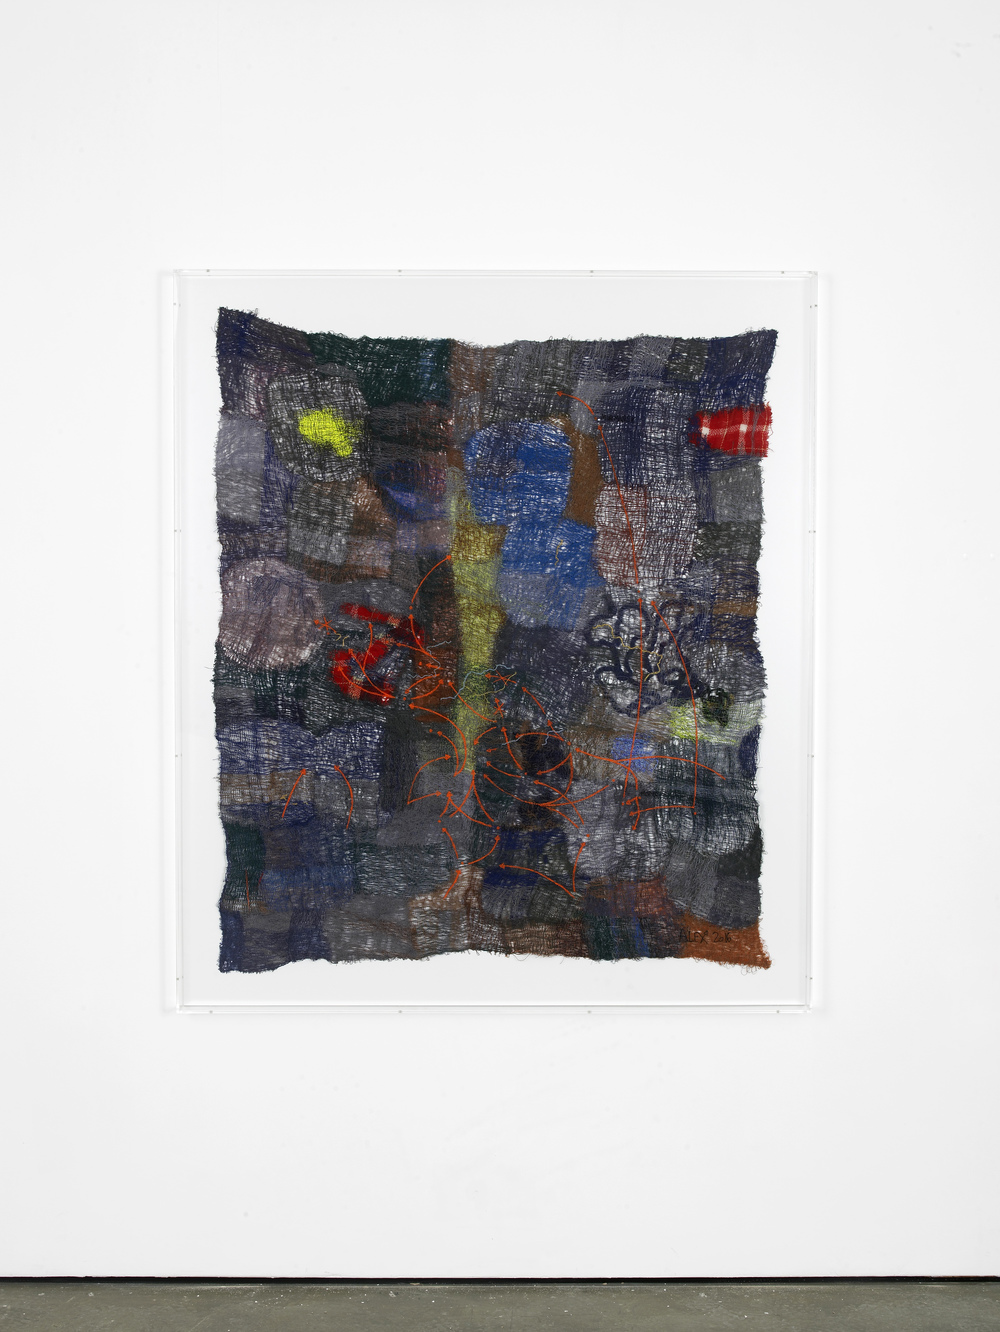 Traffic 2016 Polyester, wool, viscose 146 x 123 cm / 57.4 x 48.4 in 164.2 x 141.2 x 7 cm / 64.6 x 55.5 x 2.7 in (framed)